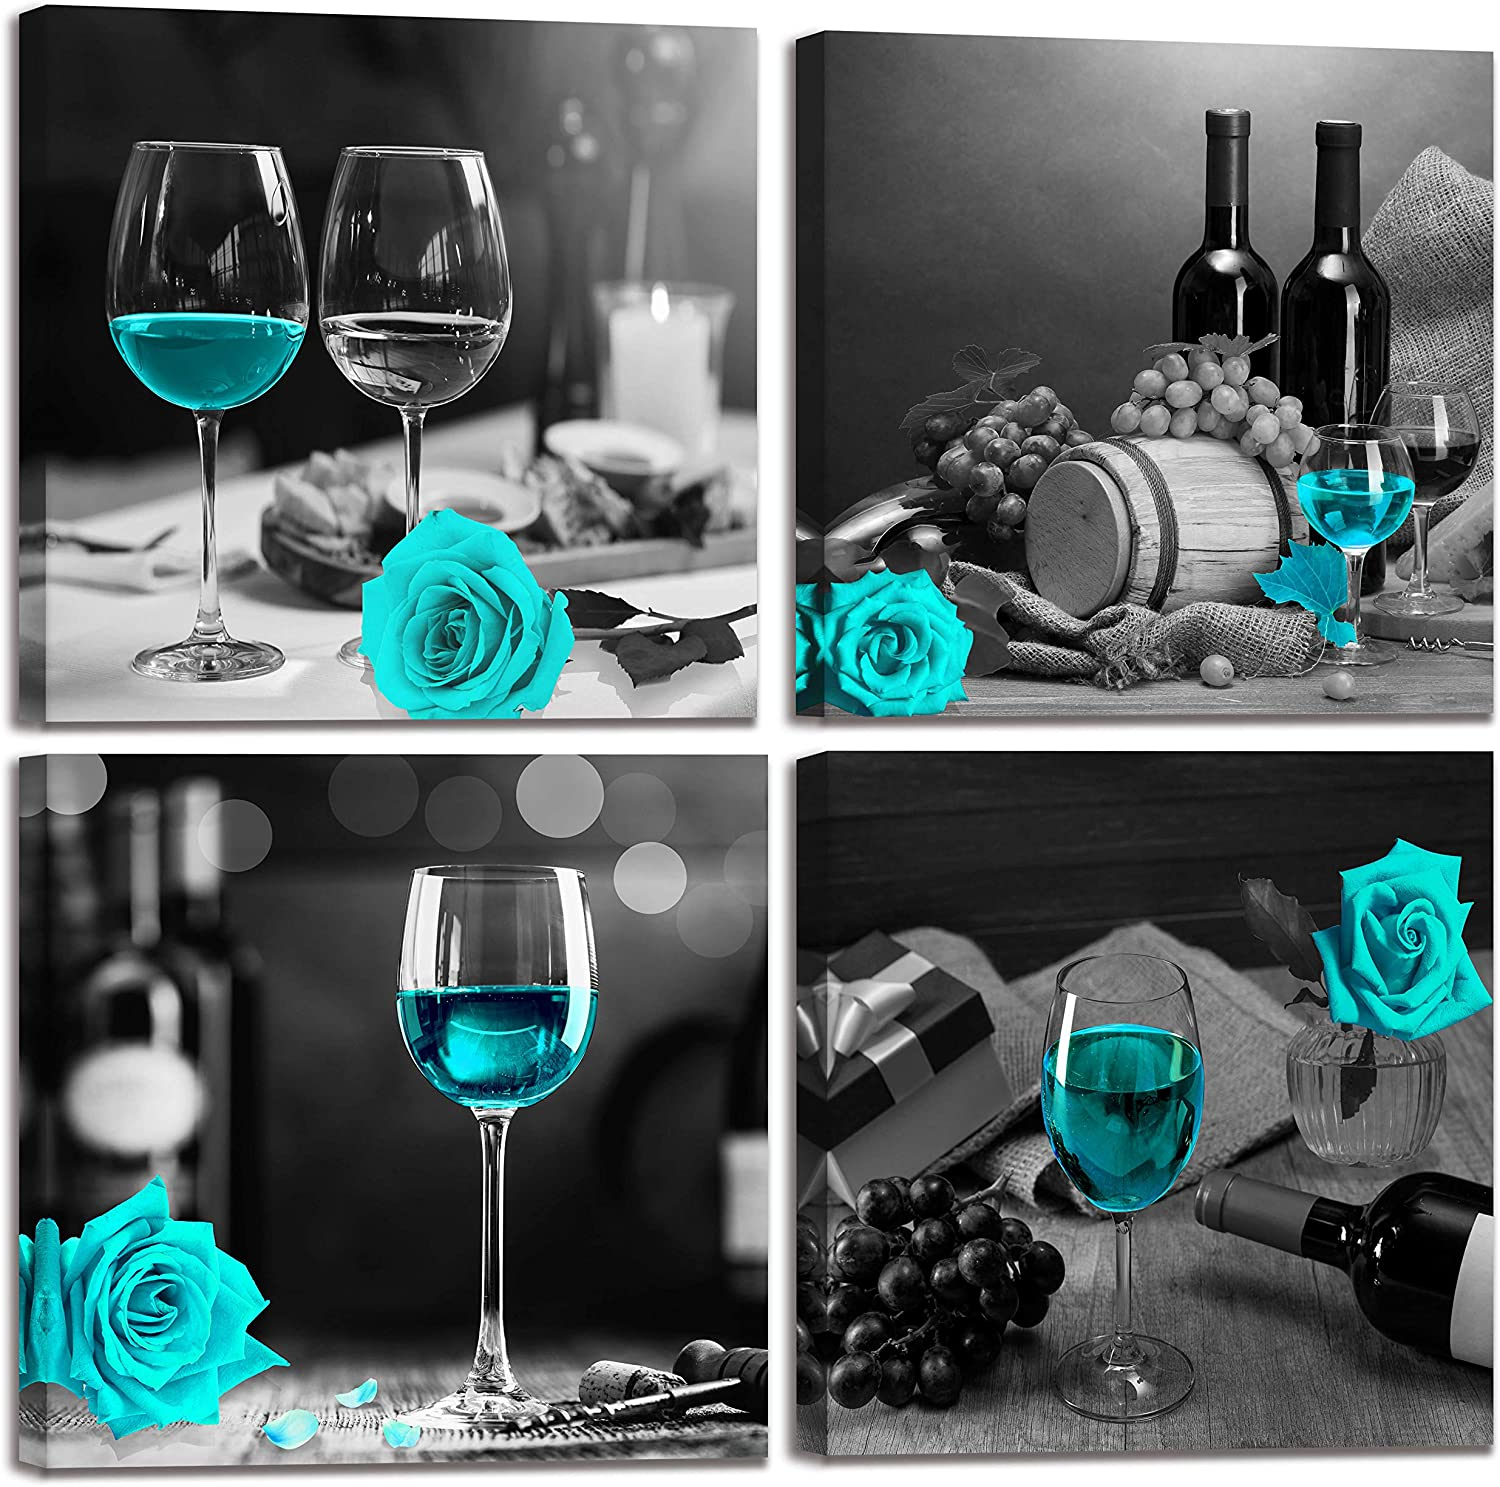 Teal Rose Artwork - Black And White Modern Kitchen Wall Art Decorations